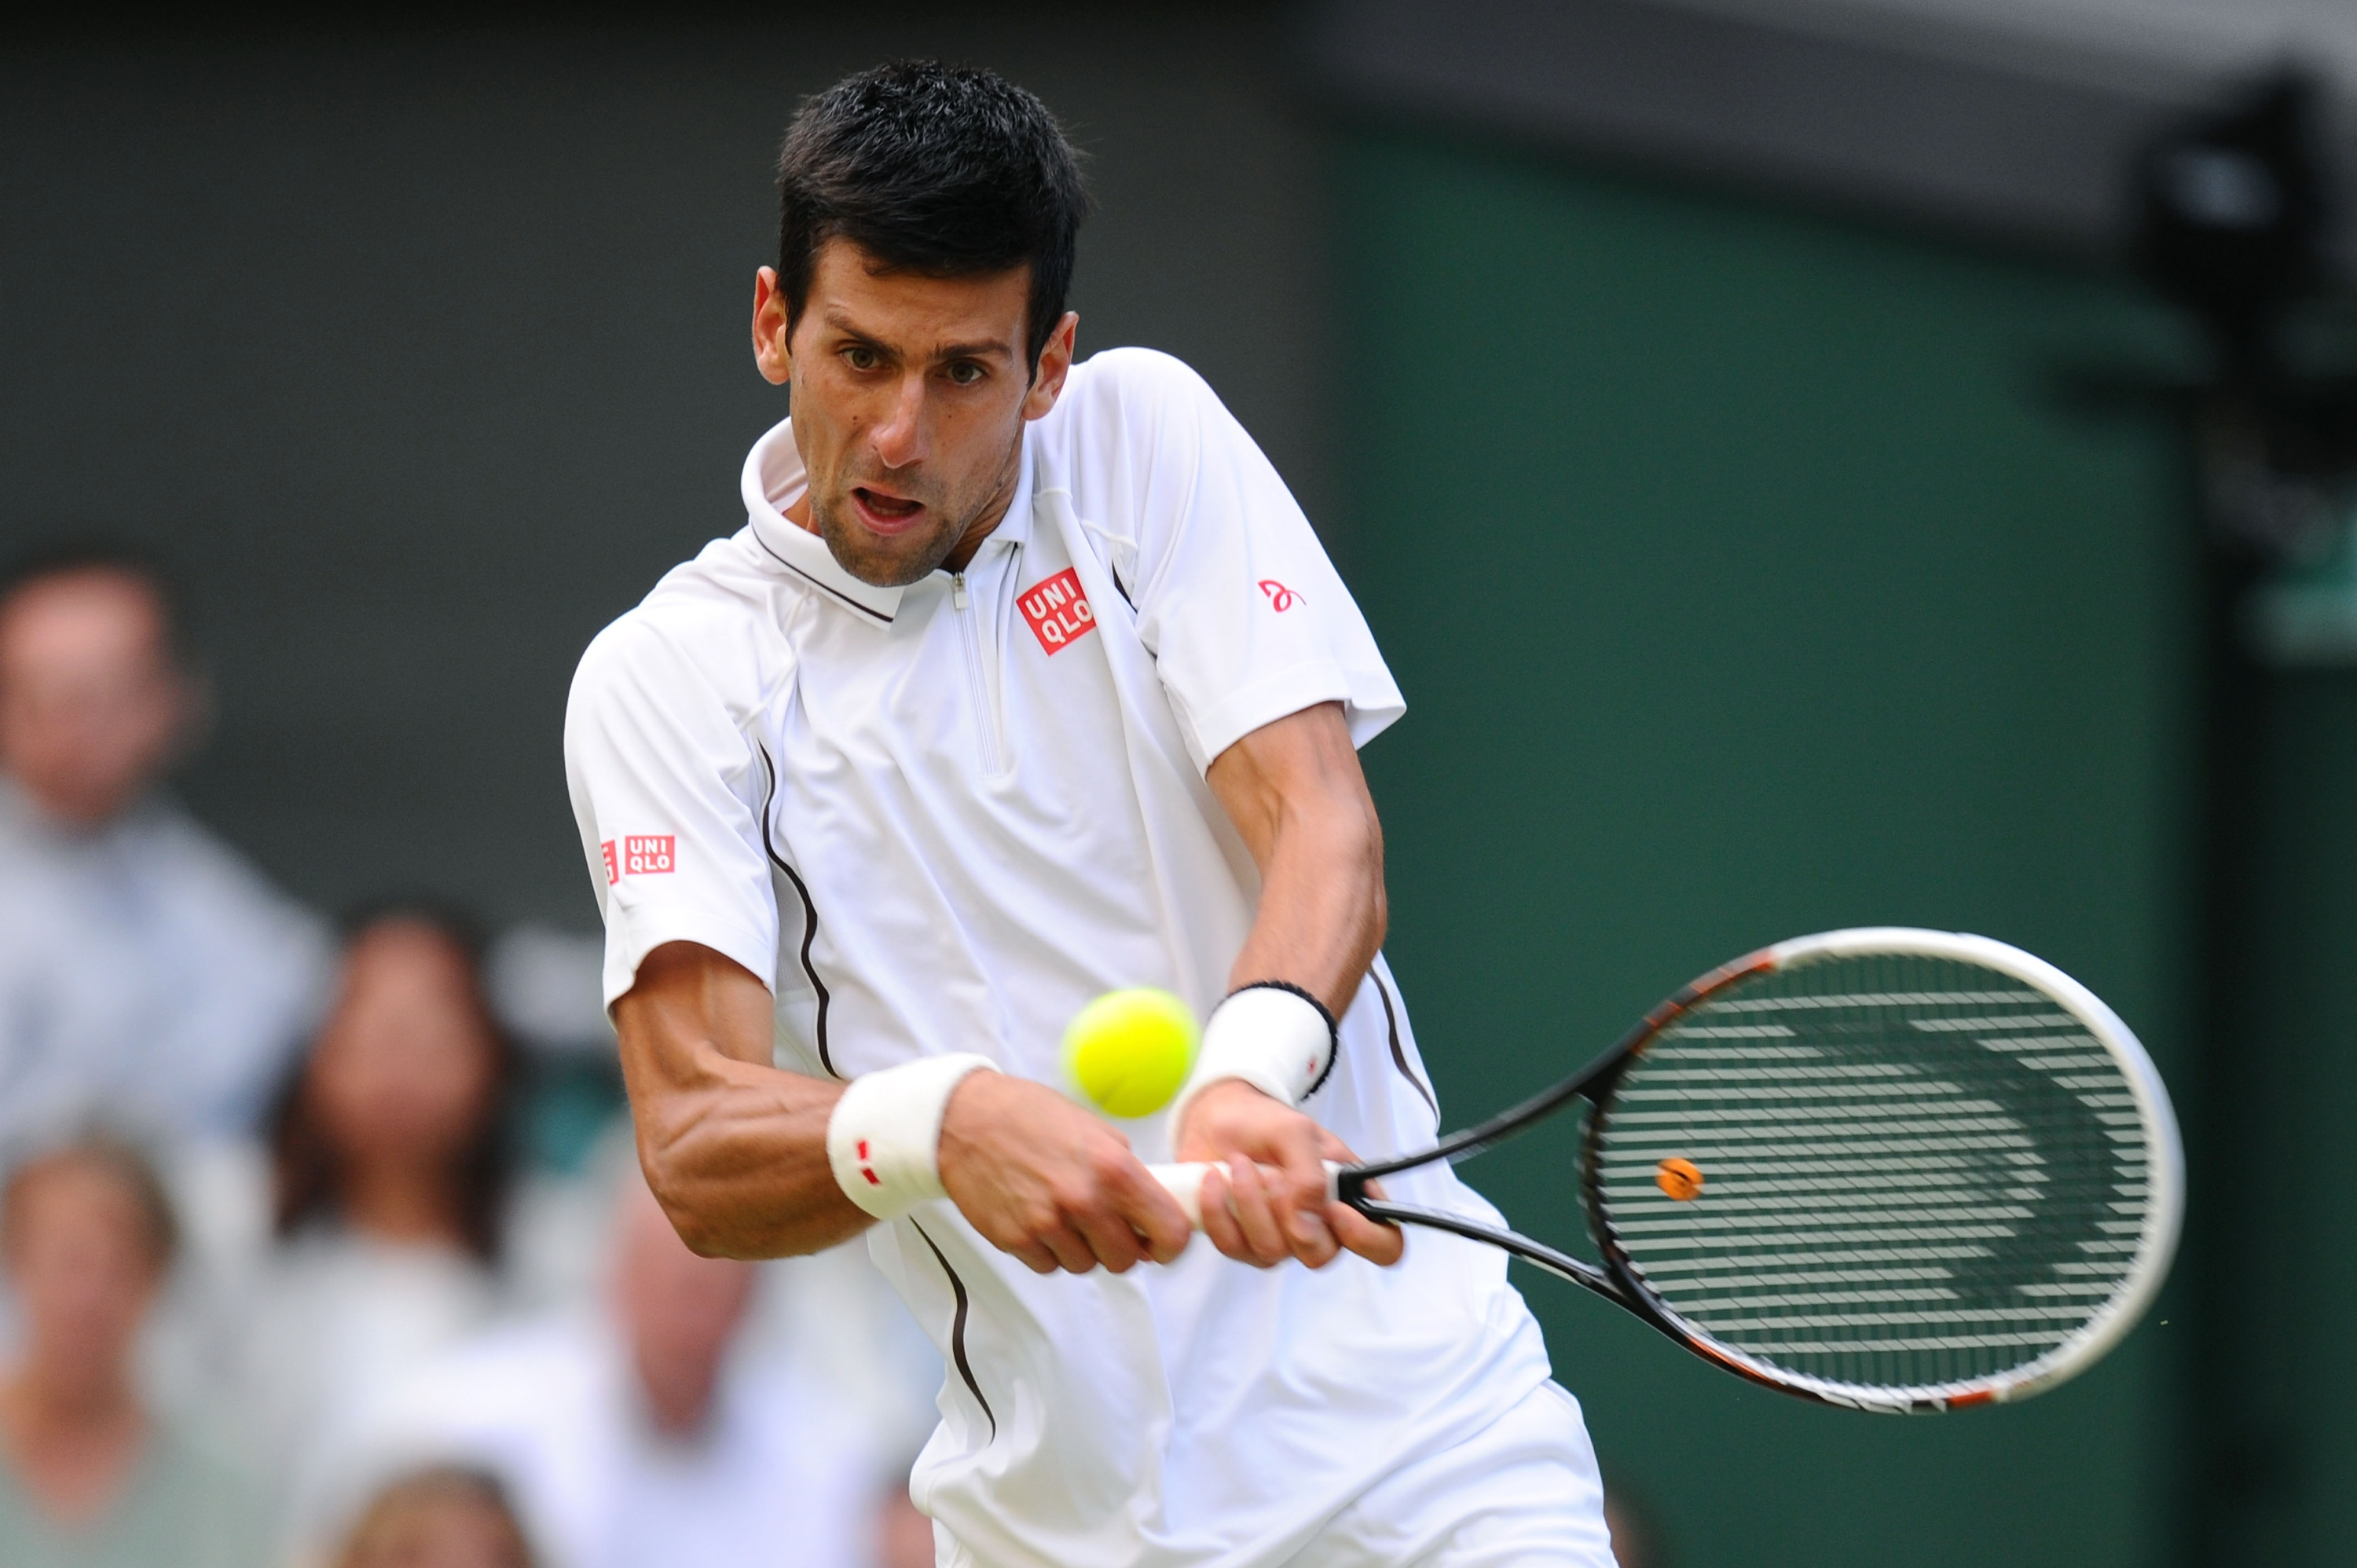 Novak Djokovic plays a backhand during his fourth round match against Tommy Haas. (Getty)